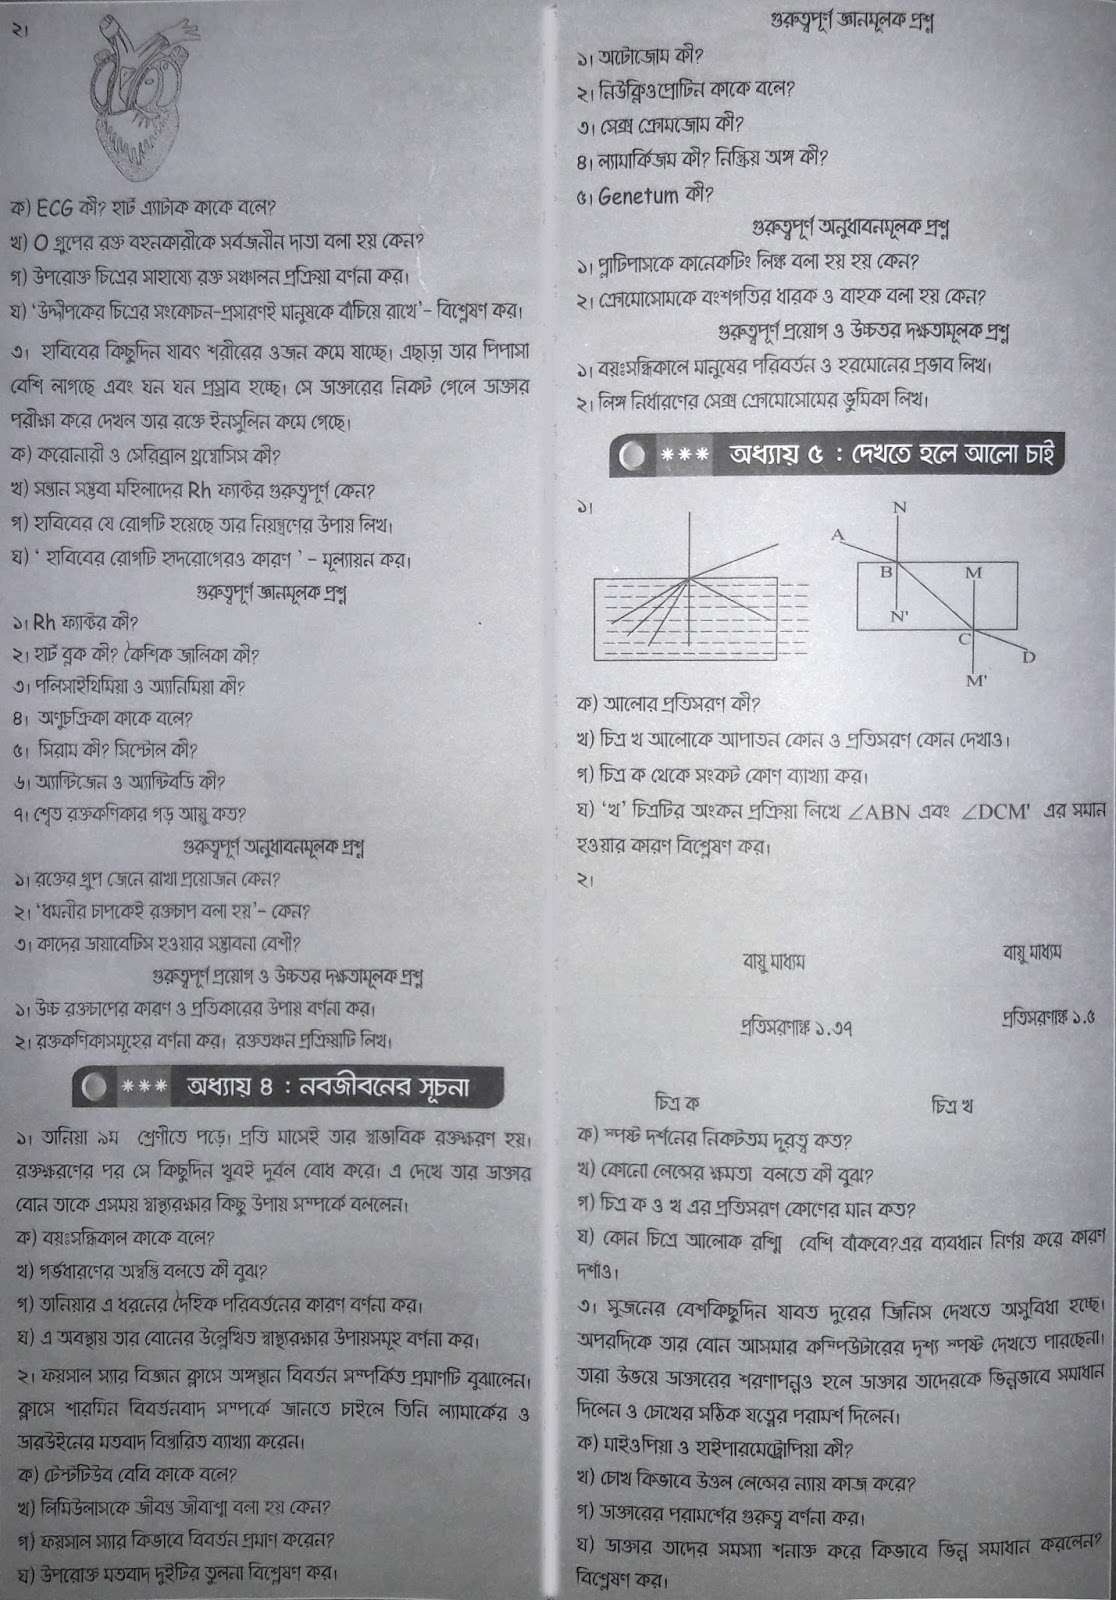 ssc general science suggestion, exam question paper, model question, mcq question, question pattern, preparation for dhaka board, all boards